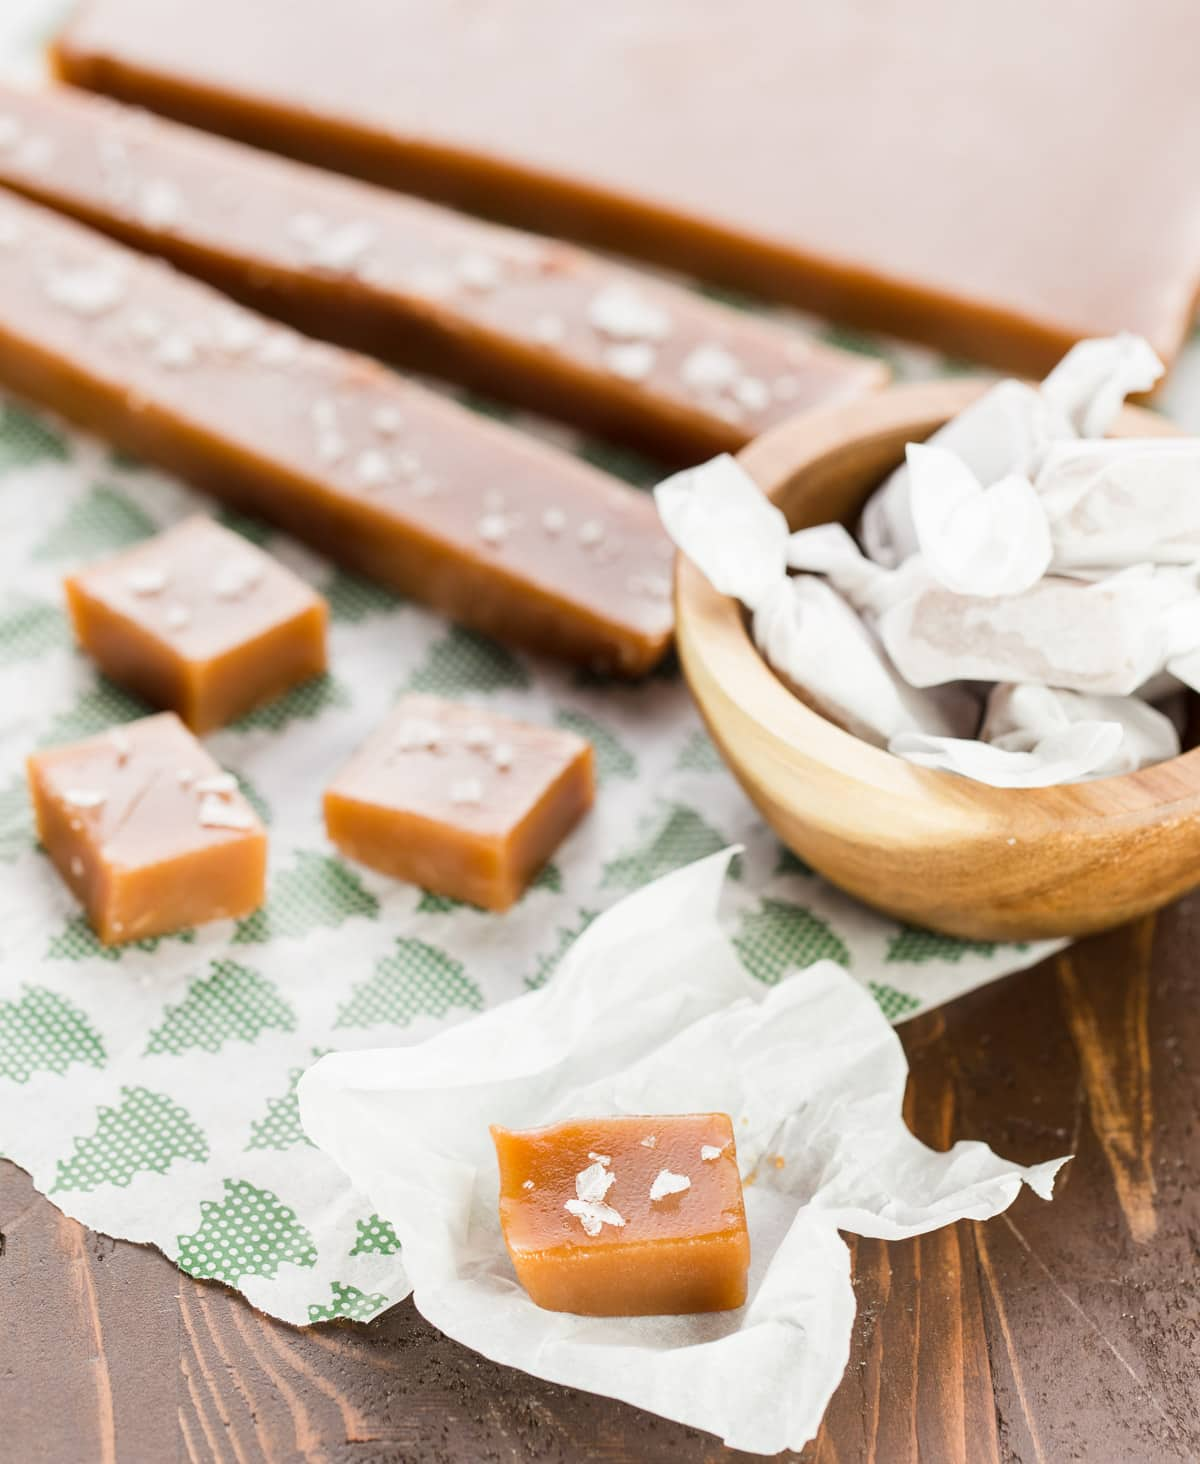 caramels on parchment paper.